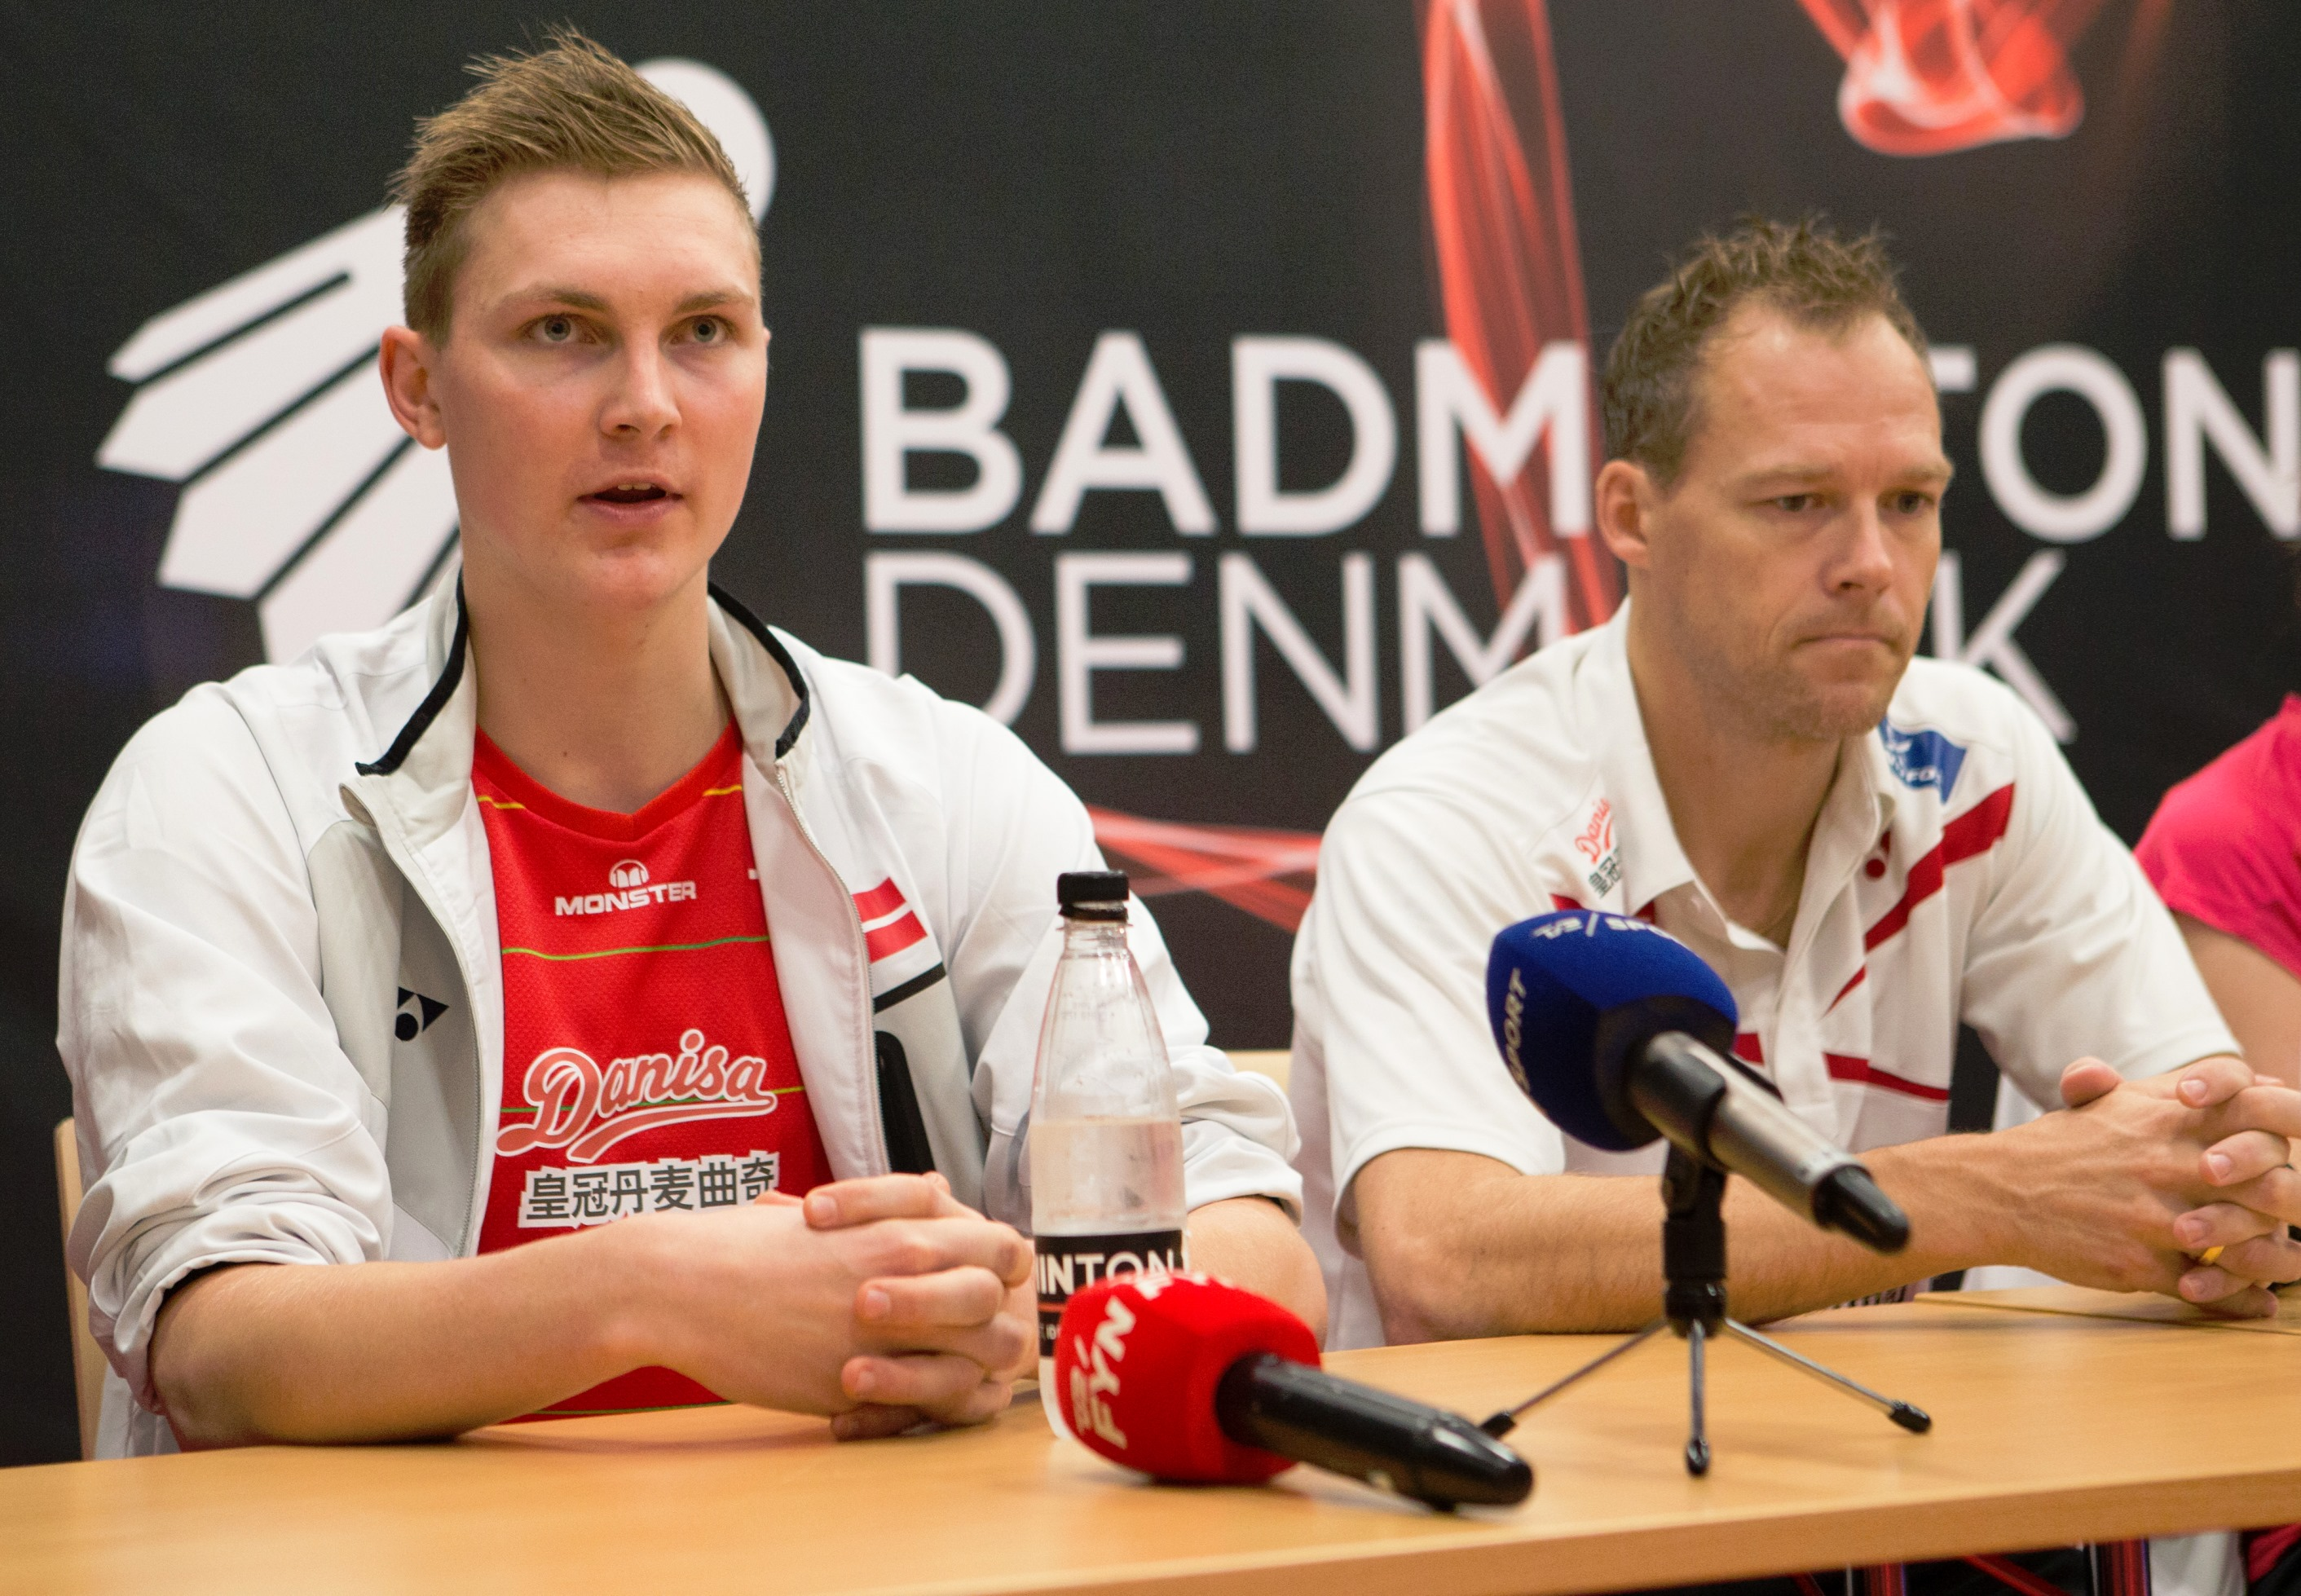 Viktor Axelsen (left) and Kenneth Jonassen